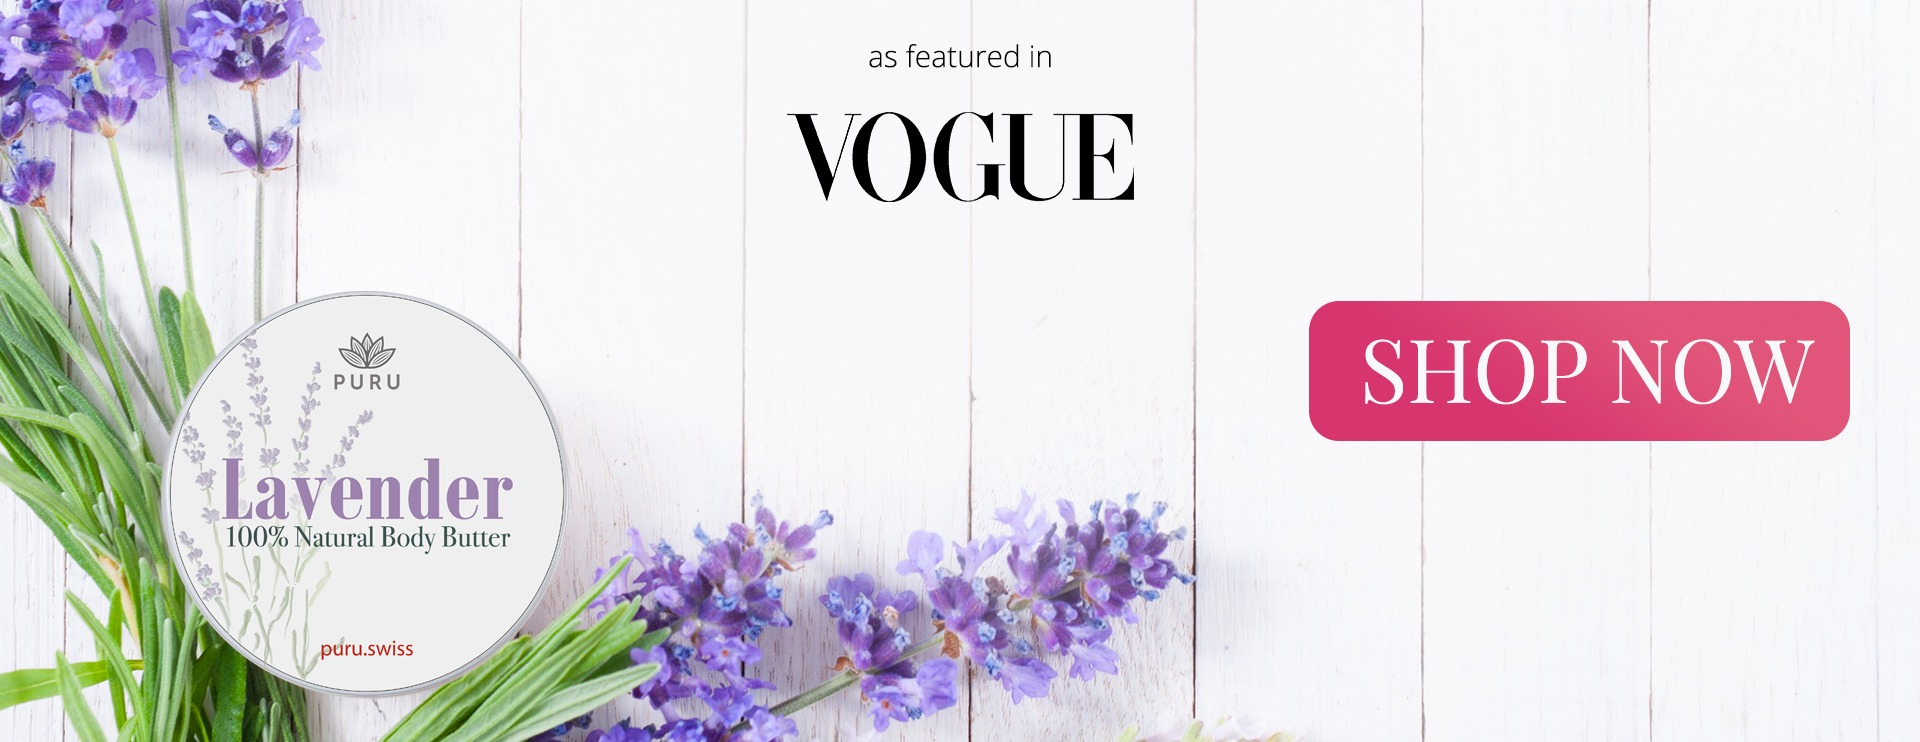 100% Natural Lavender Body Butter was featured in Vogue